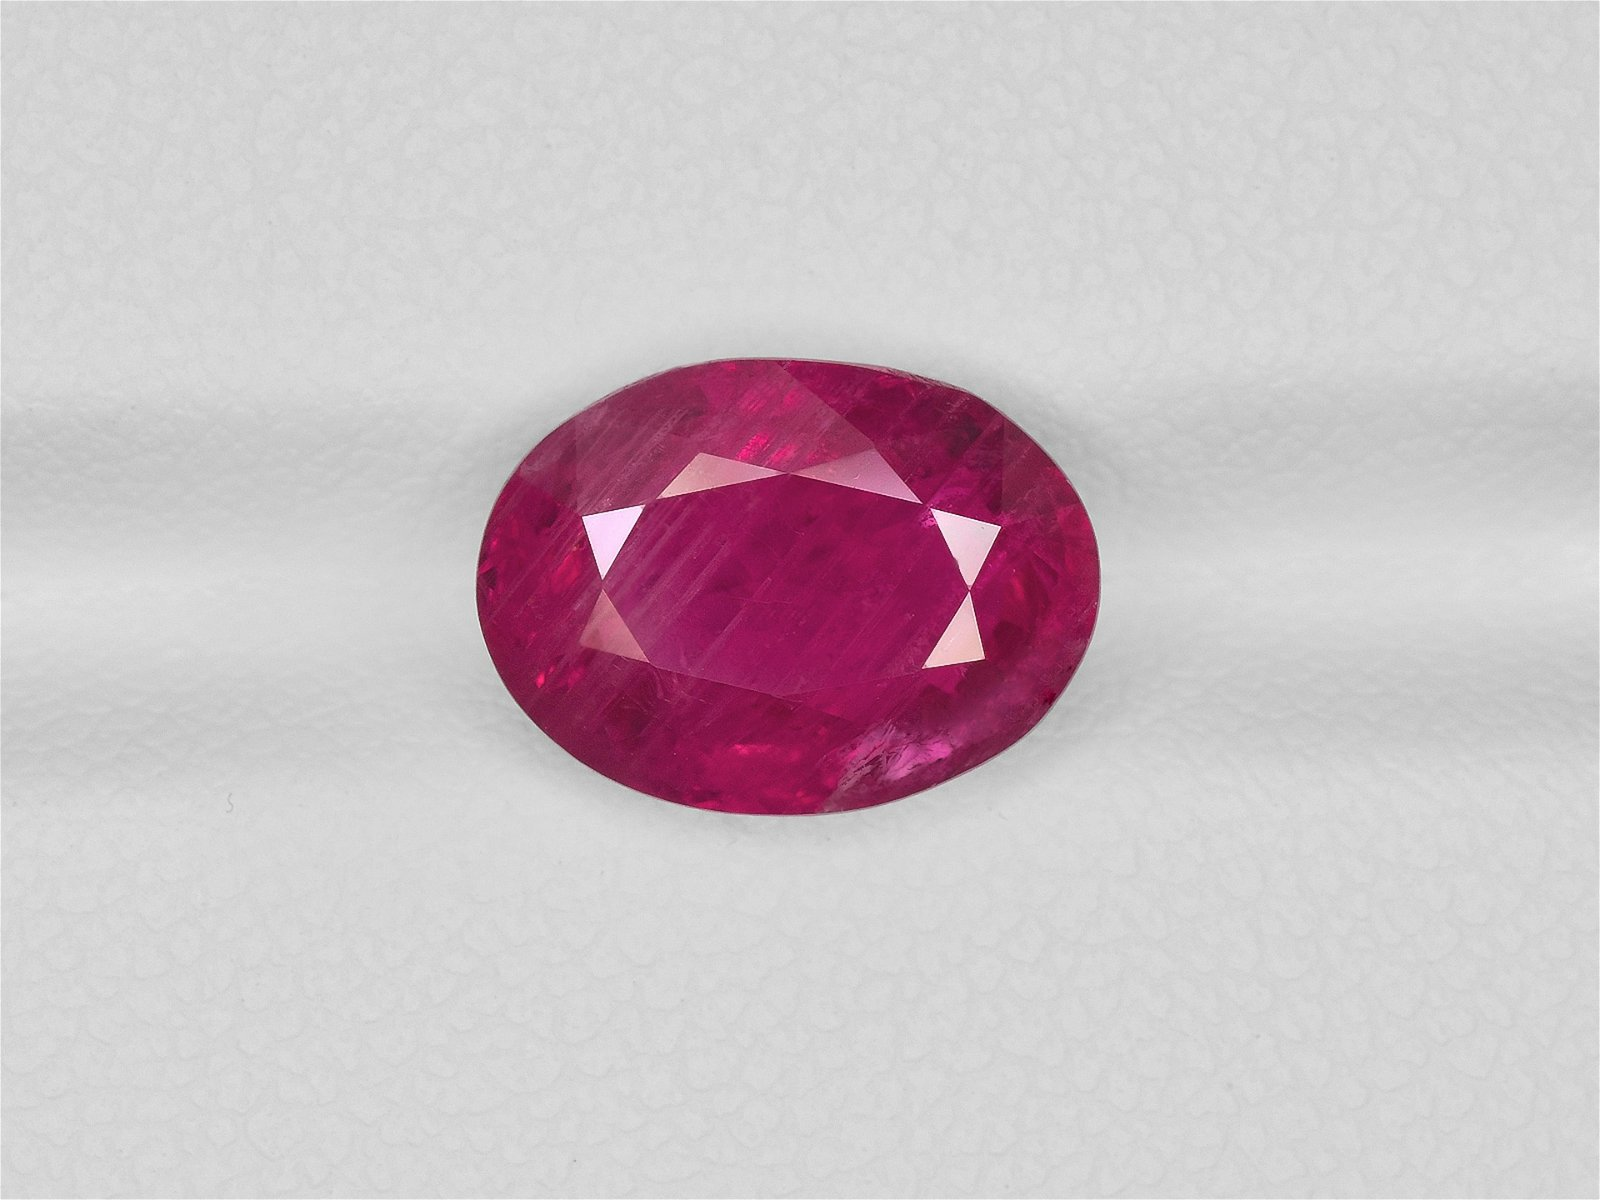 Ruby, 4.57ct, Mined in Burma, Certified by GRS